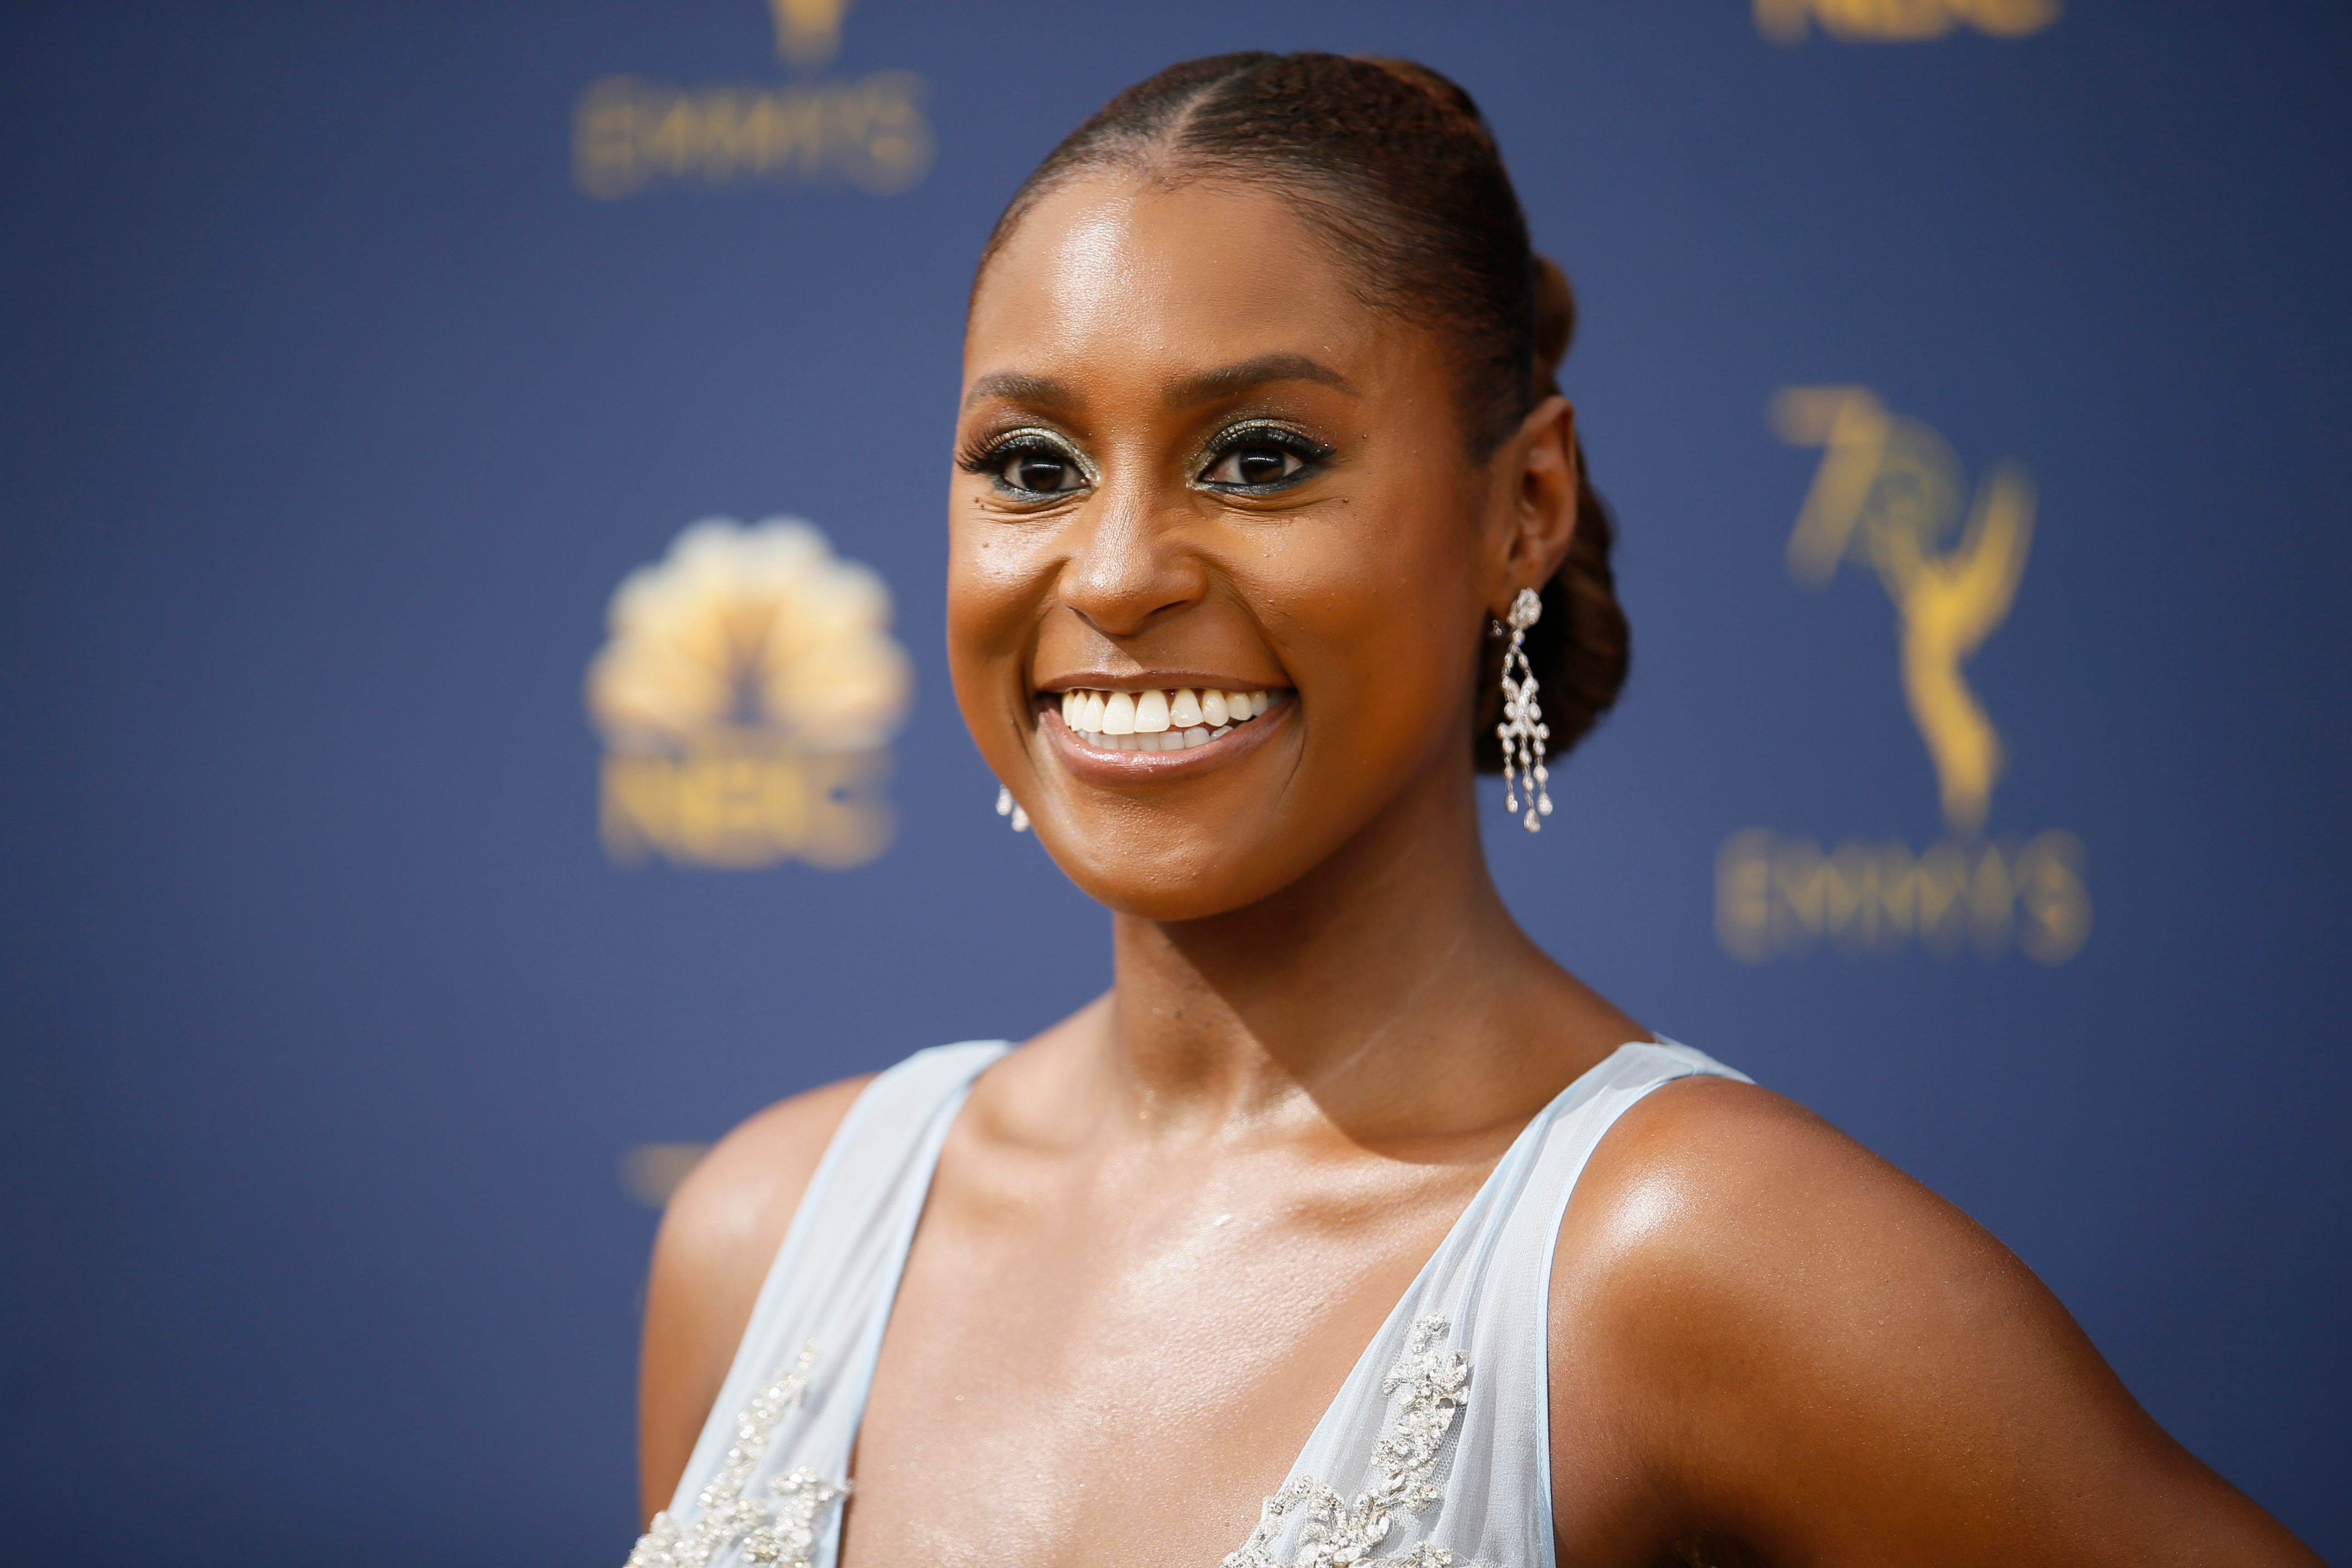 Issa Rae arrives at the 70th Primetime Emmy Awards on Monday, Sept. 17, 2018, at the Microsoft Theater in Los Angeles. (Photo by Danny Moloshok/Invision for the Television Academy/AP Images)